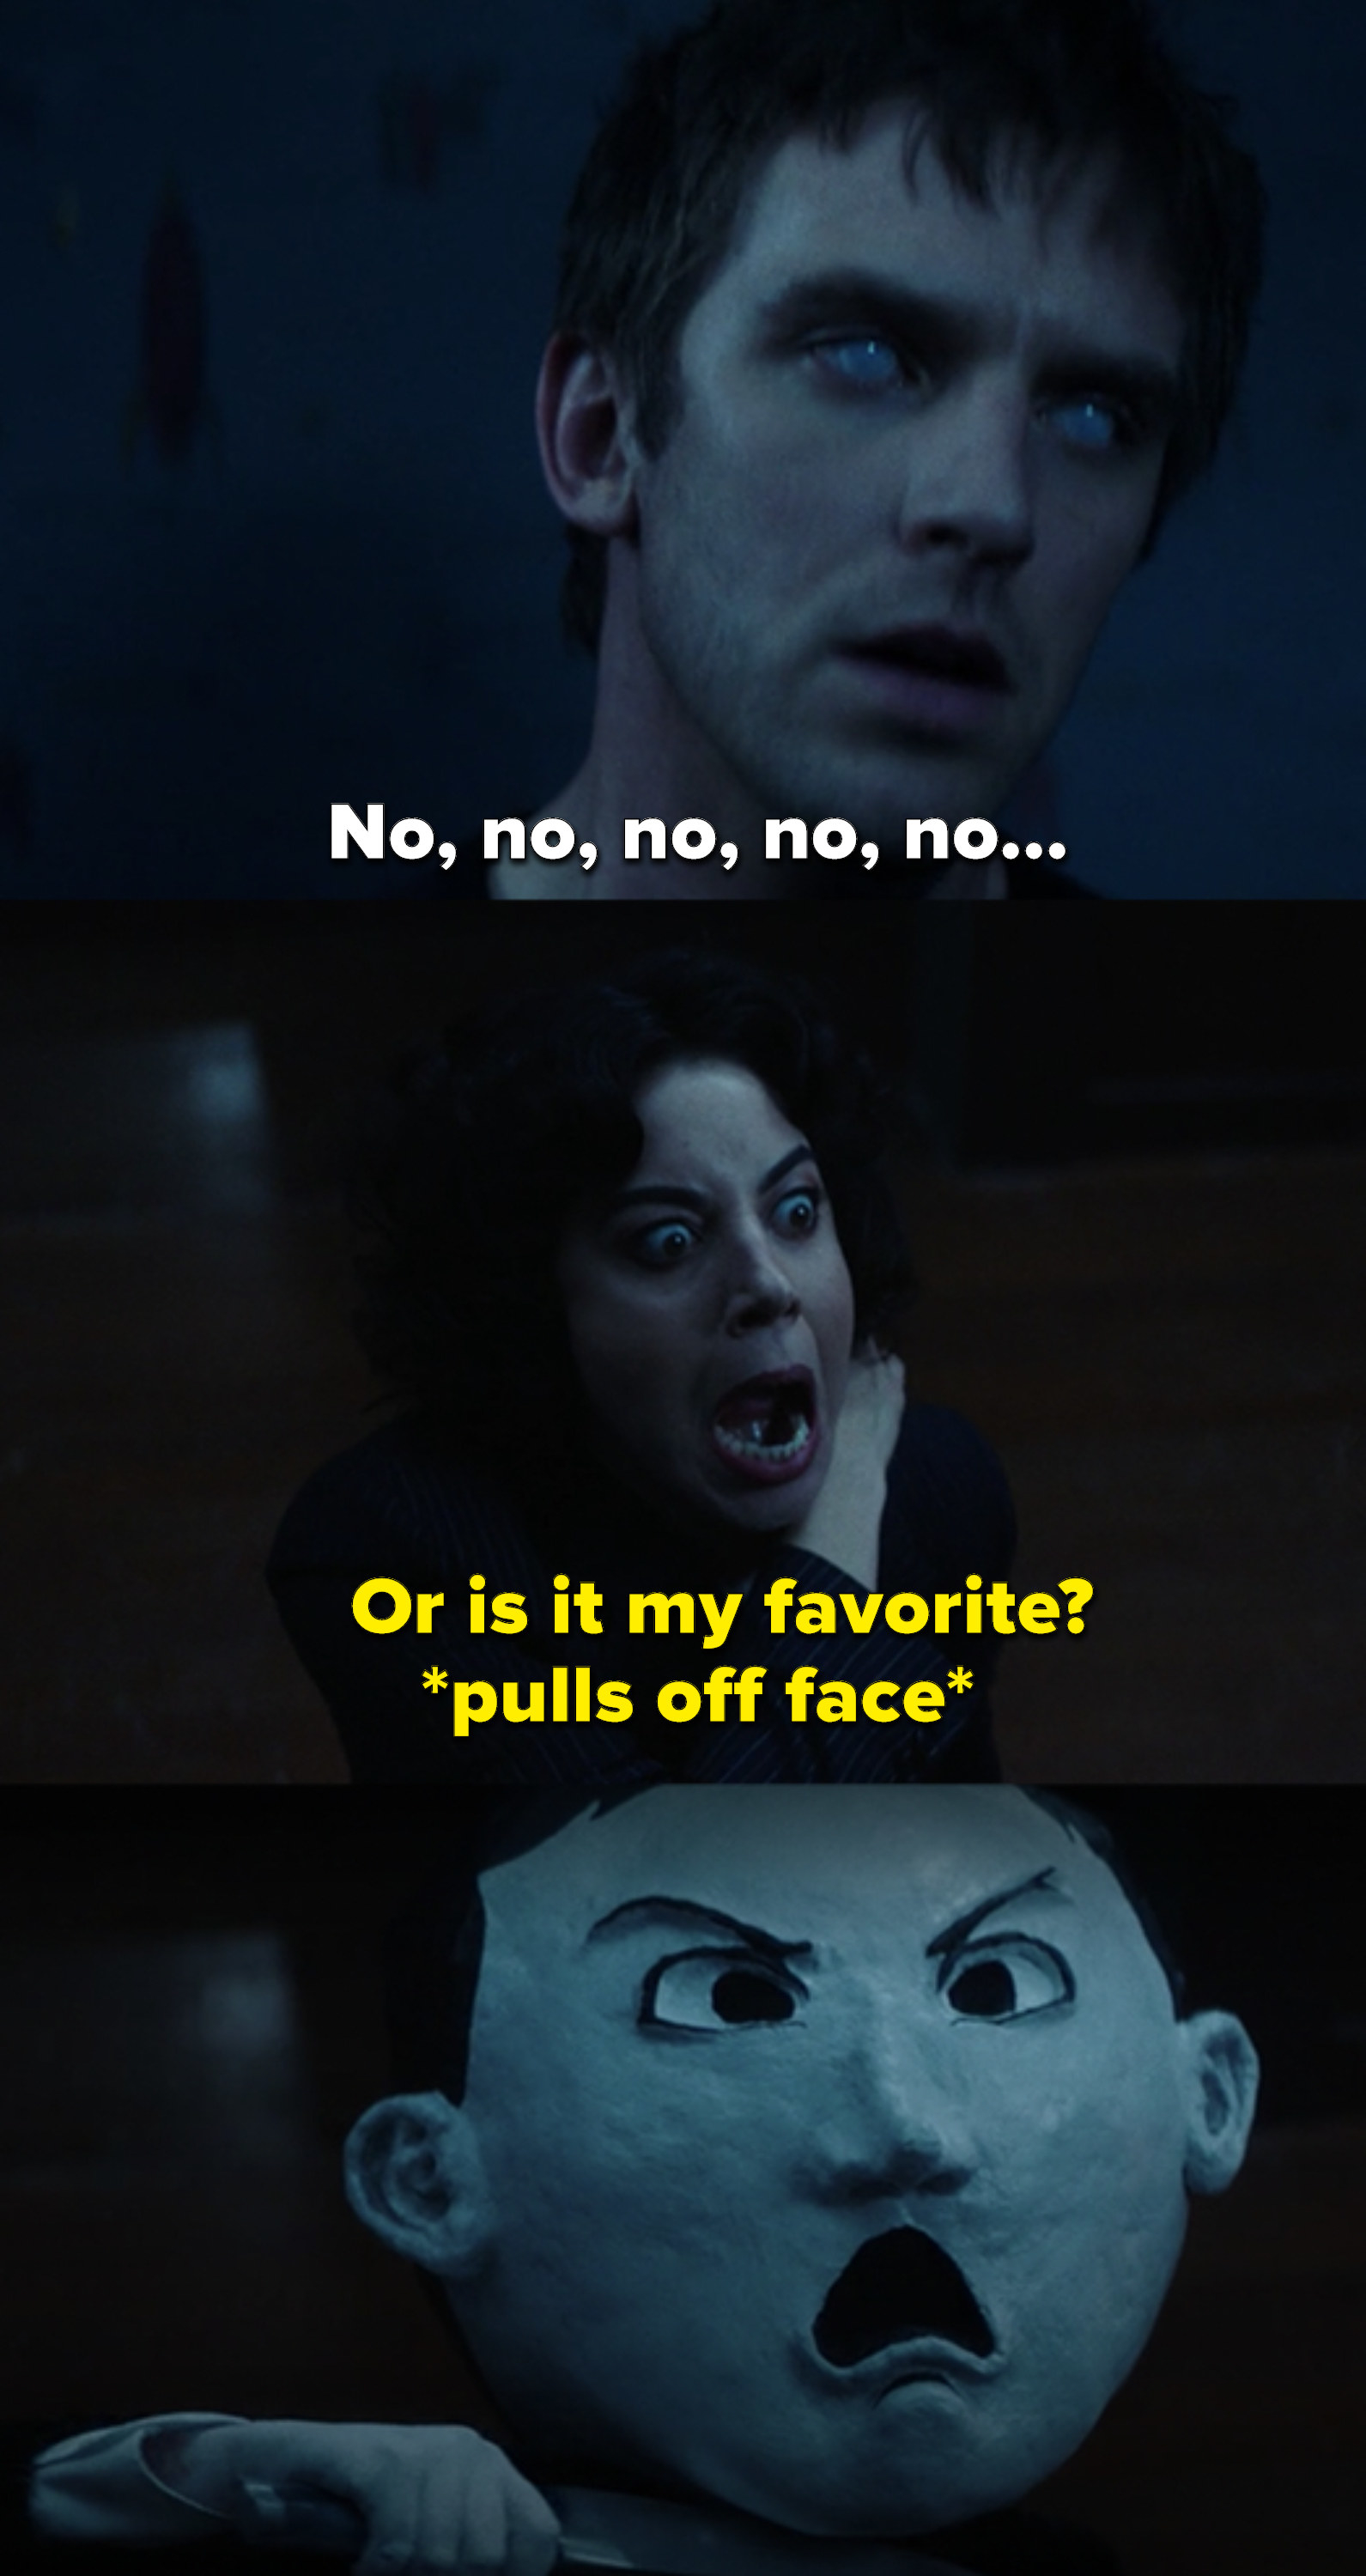 """David saying """"No no no no"""" with his eyes filmy, then they see a vision of a woman turning her face into a paper mache head"""